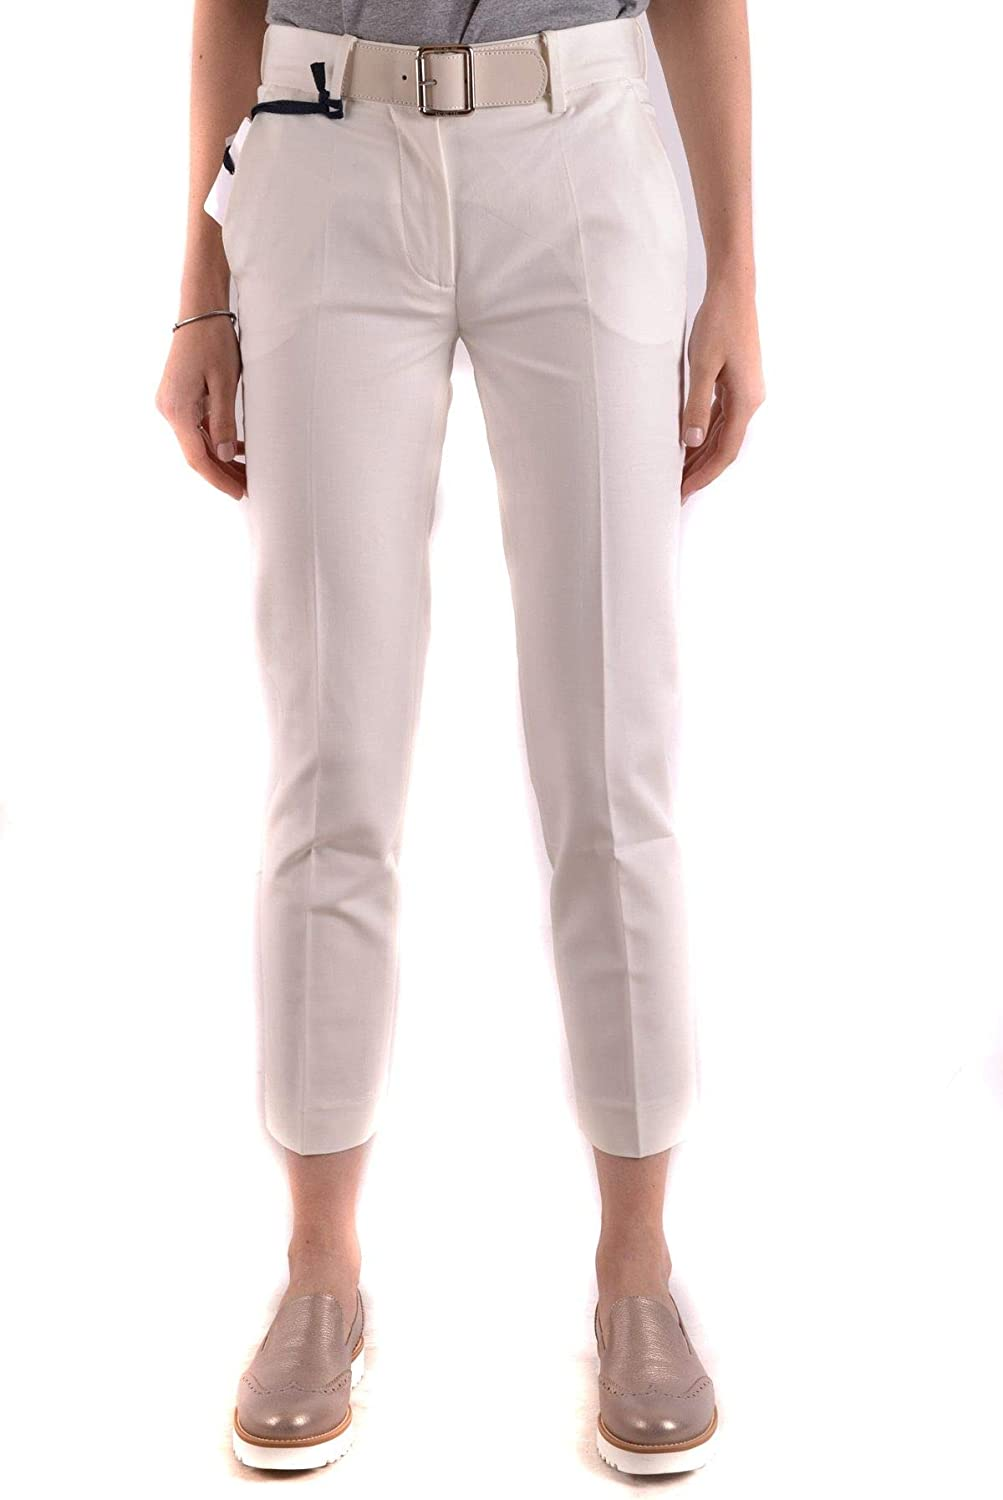 Moncler Women's MCBI31738 White Cotton Pants